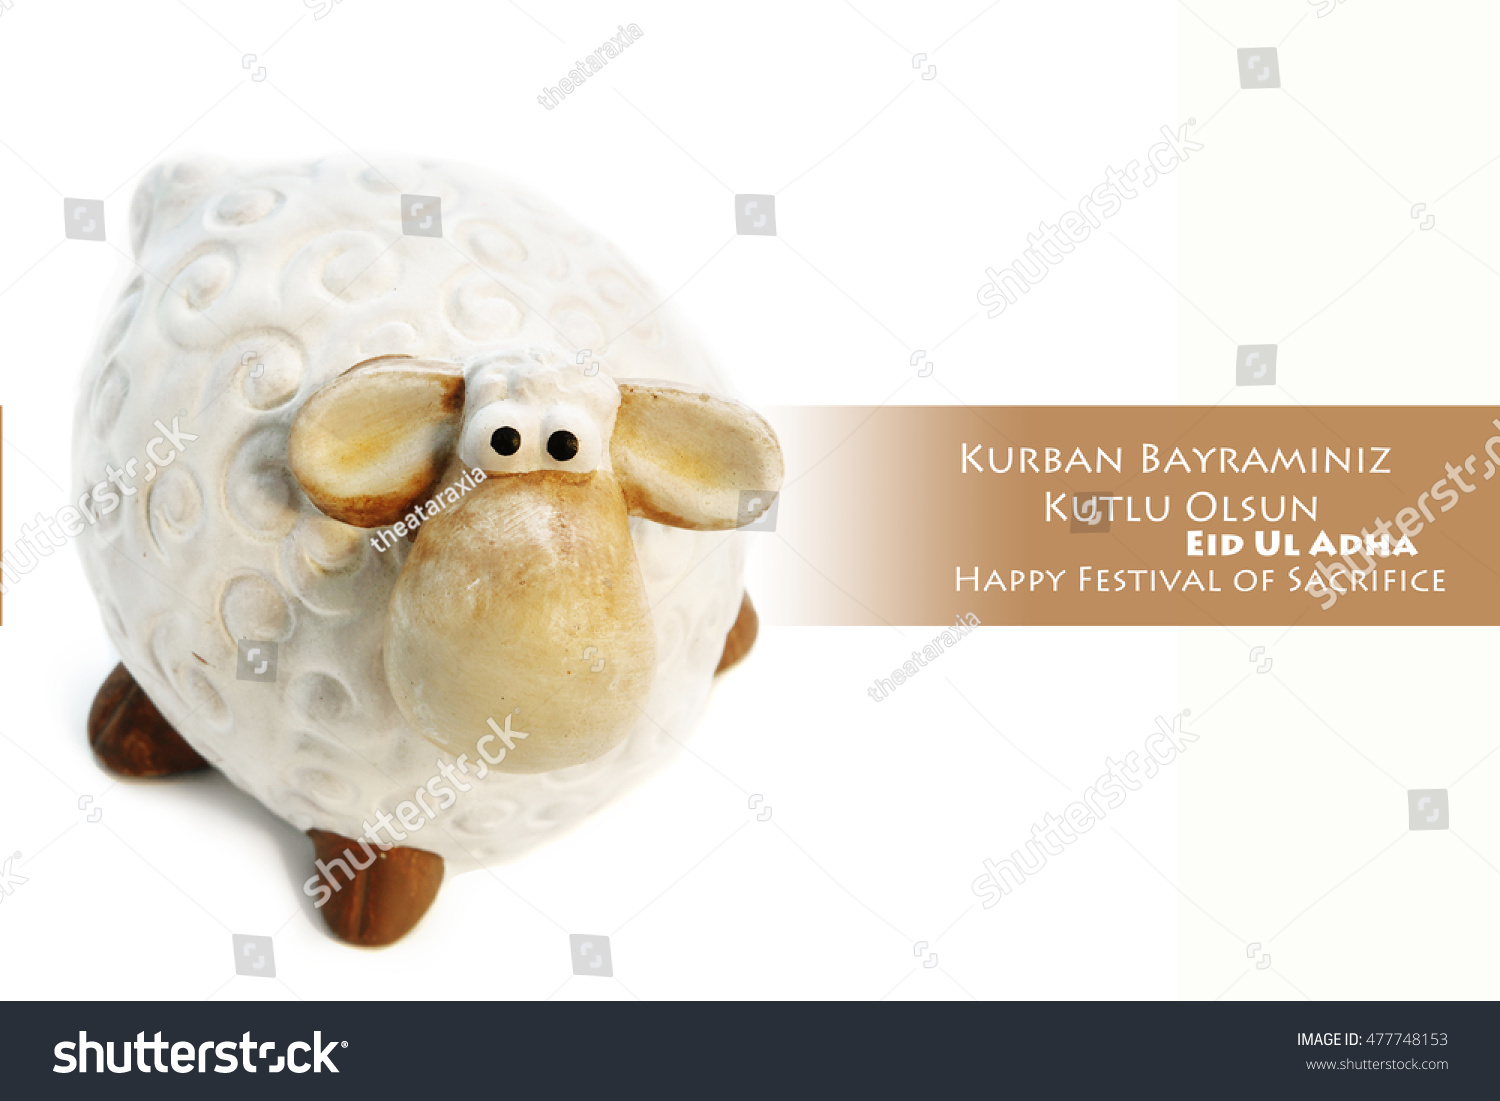 Feast of the sacrifice of the lamb for posts. Feast of the Sacrif (Eid al-Adha Mubarak) Feast of the Sacrifice Greeting (Turkish: Kurban Bayraminiz Kutlu Olsun)  #477748153